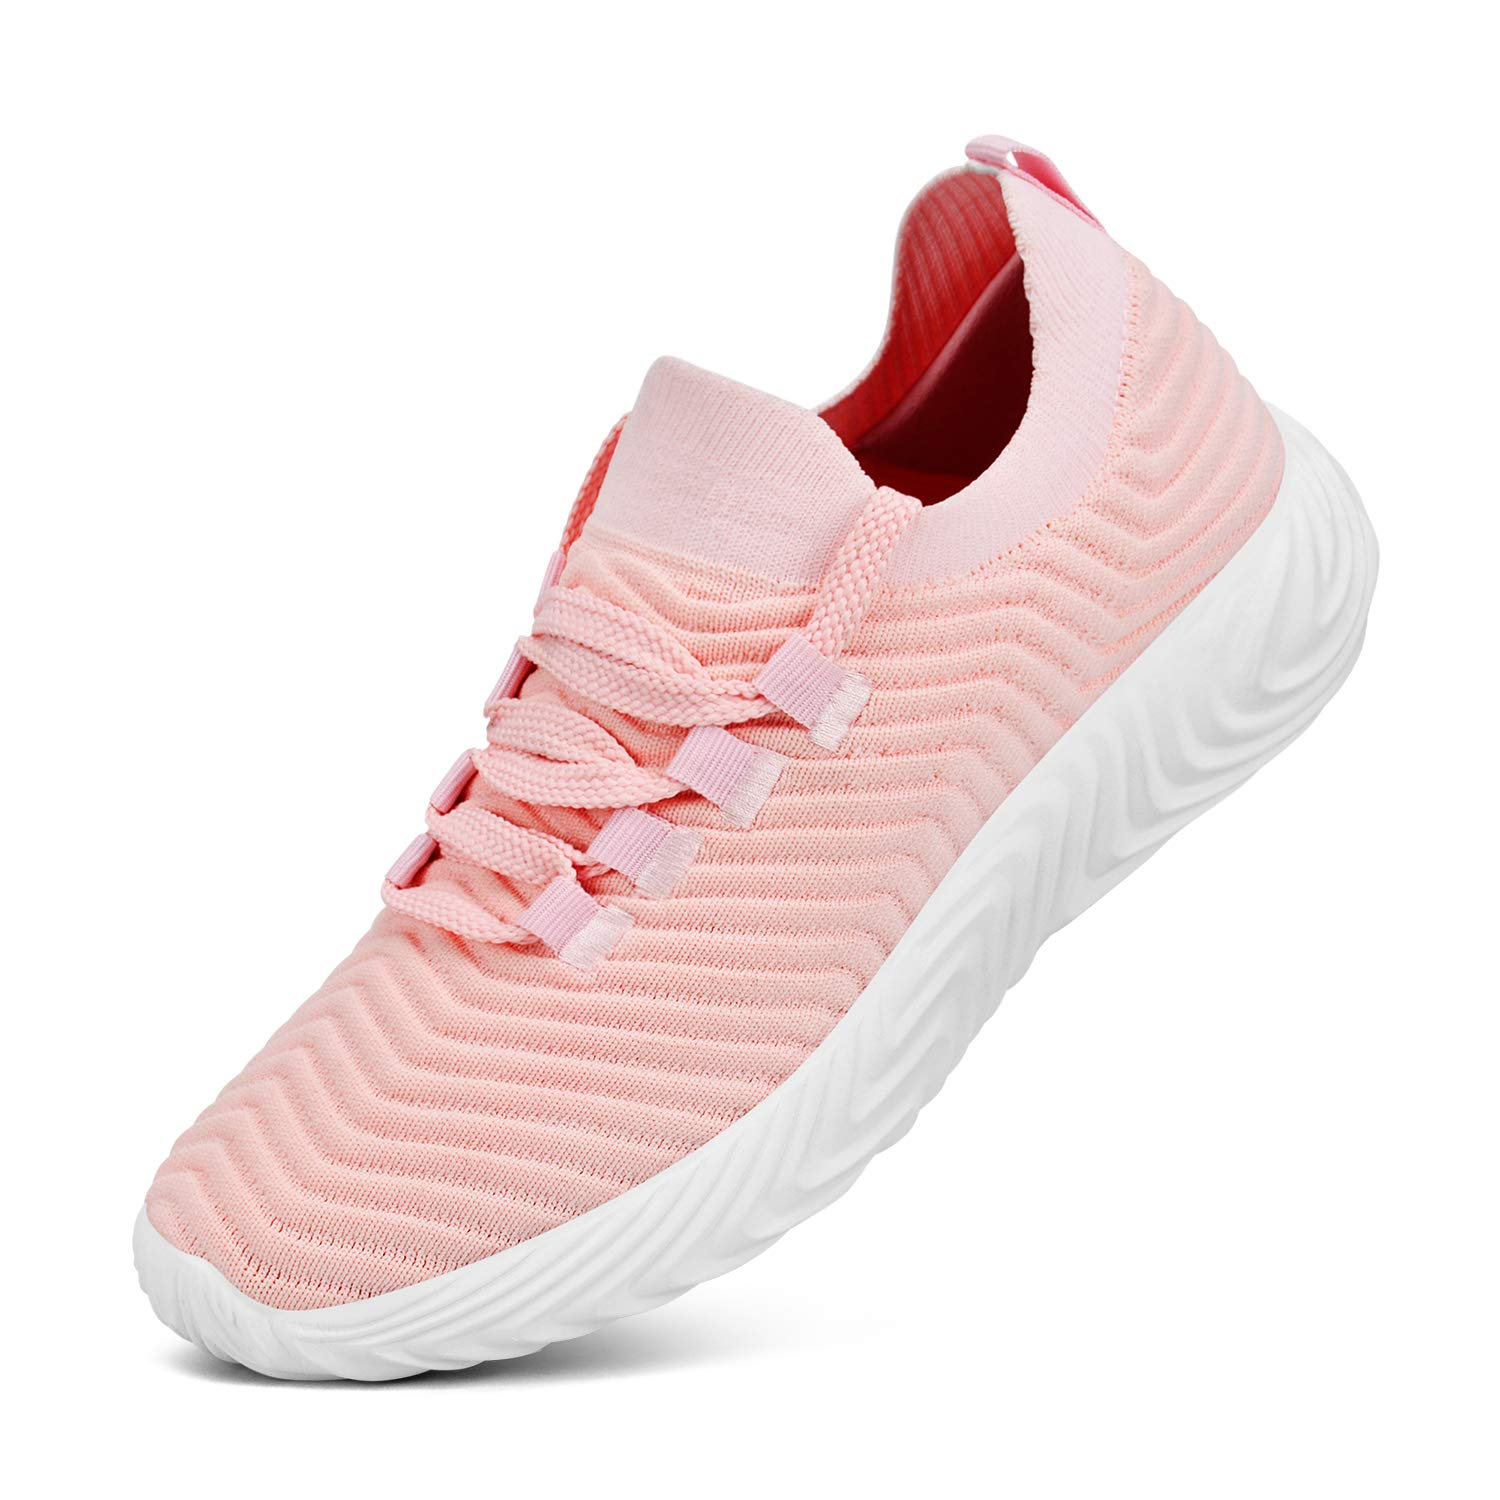 Feetmat Shoes for Women Ultra Lightweight Lace up Workout Sneakers